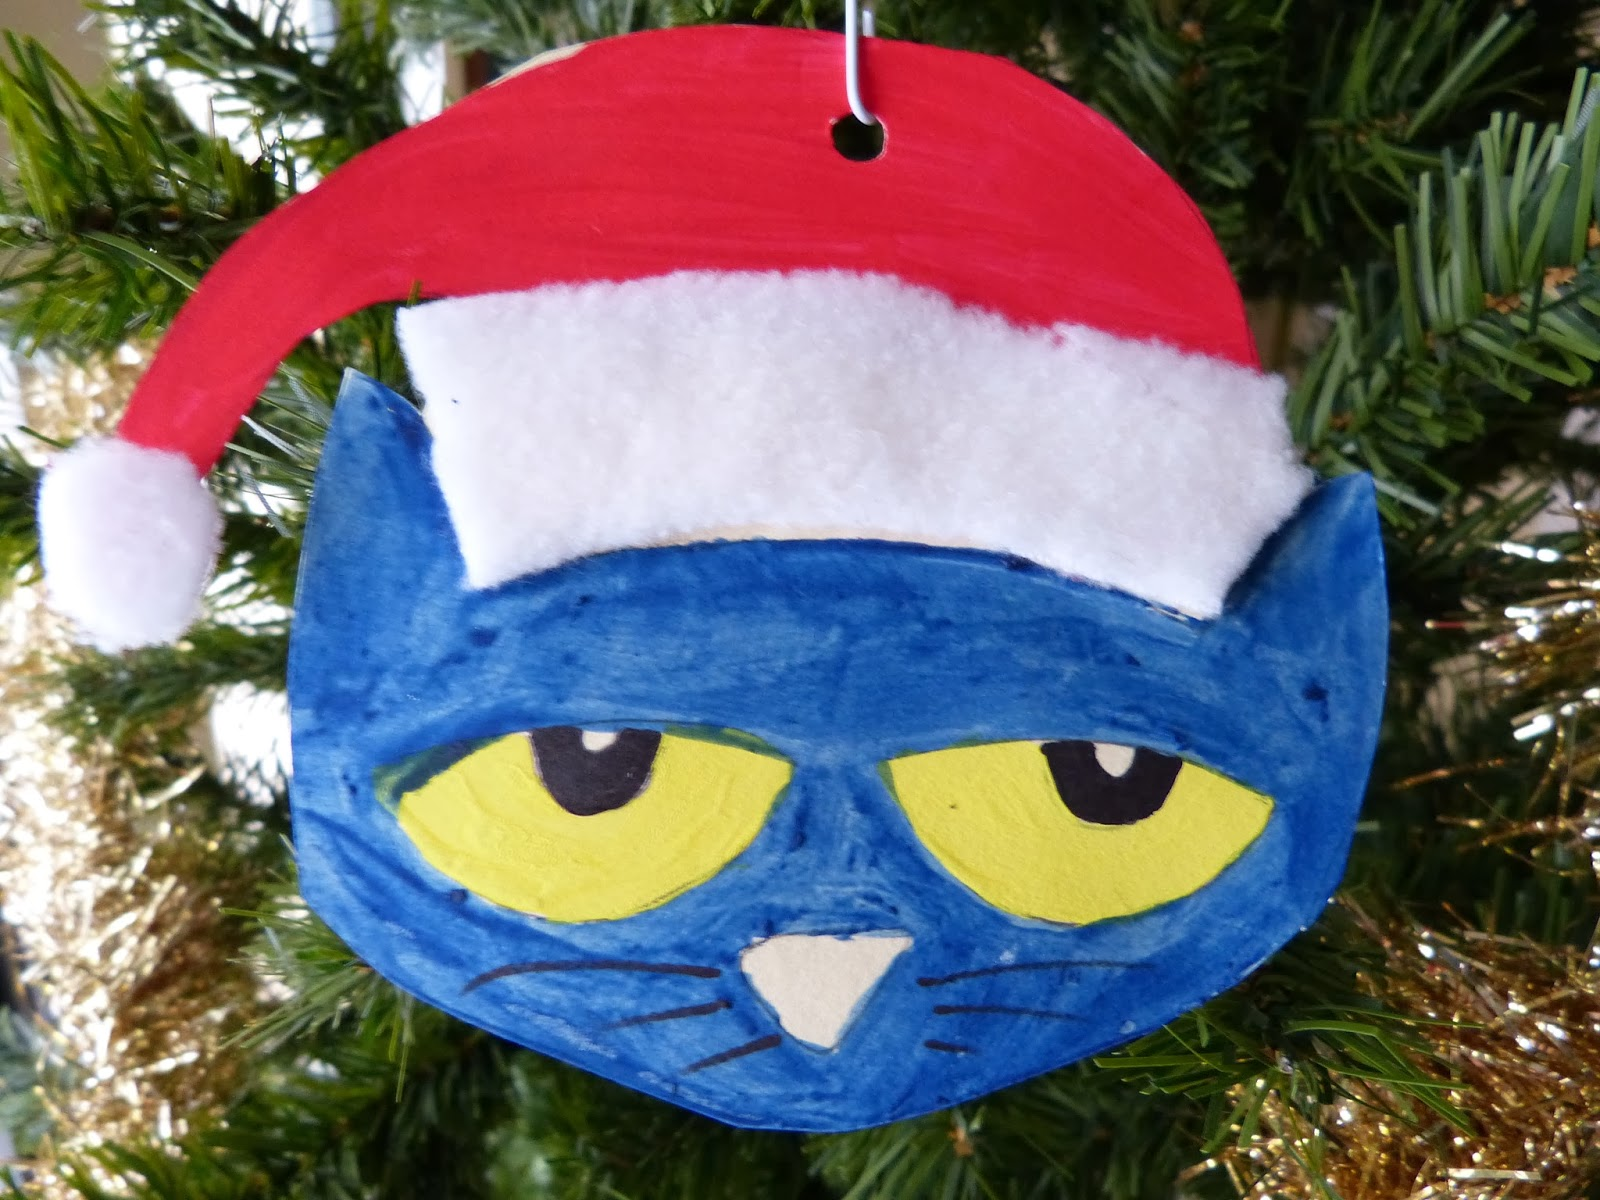 pete the cat saves christmas ornament - Pete The Cat Saves Christmas